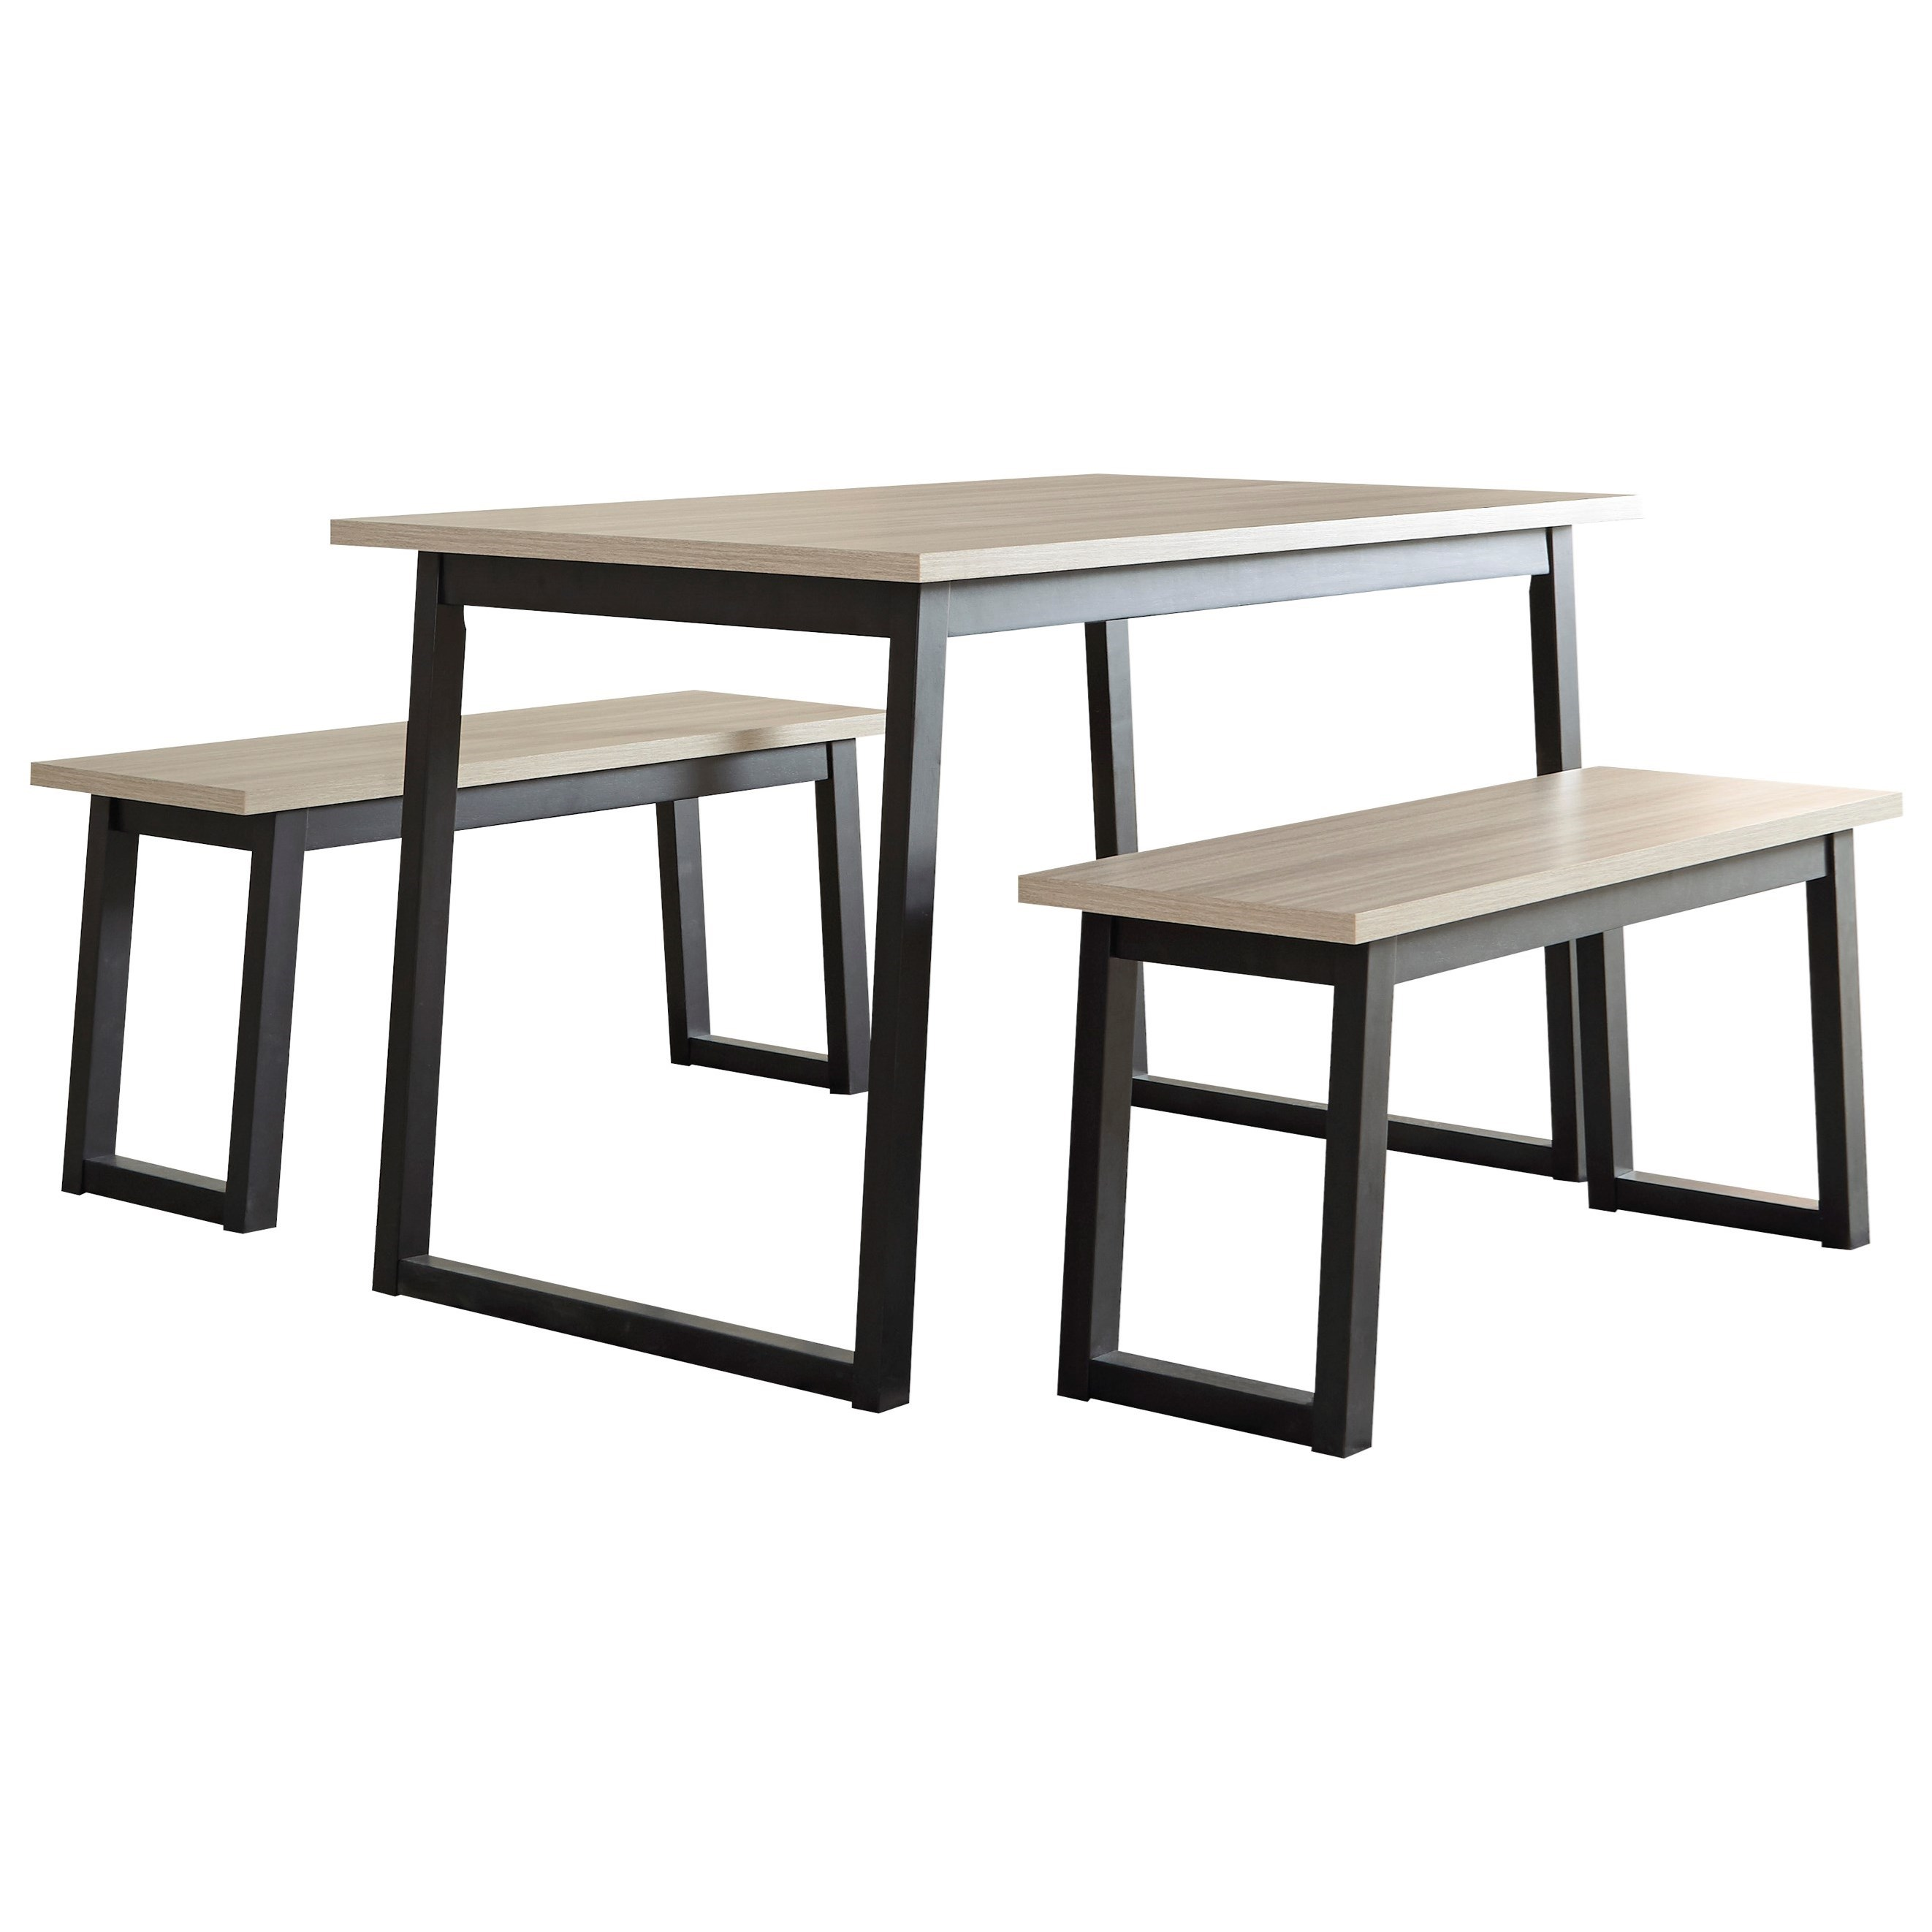 Waylowe Rectangular Table Set by Signature Design by Ashley at Sparks HomeStore